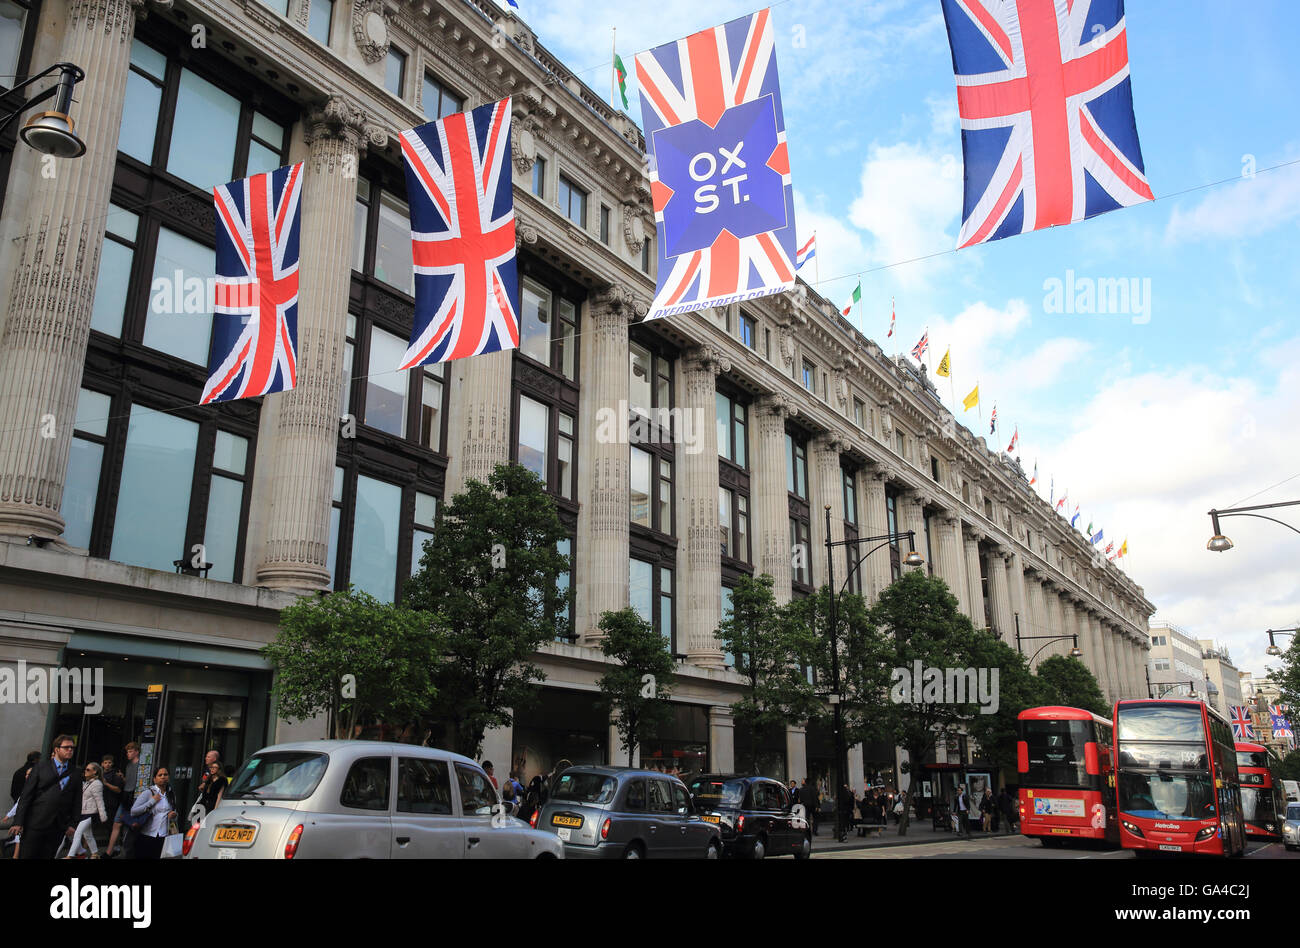 Union Jack flags line Oxford street by Selfridges department store, in central London, England, UK - Stock Image